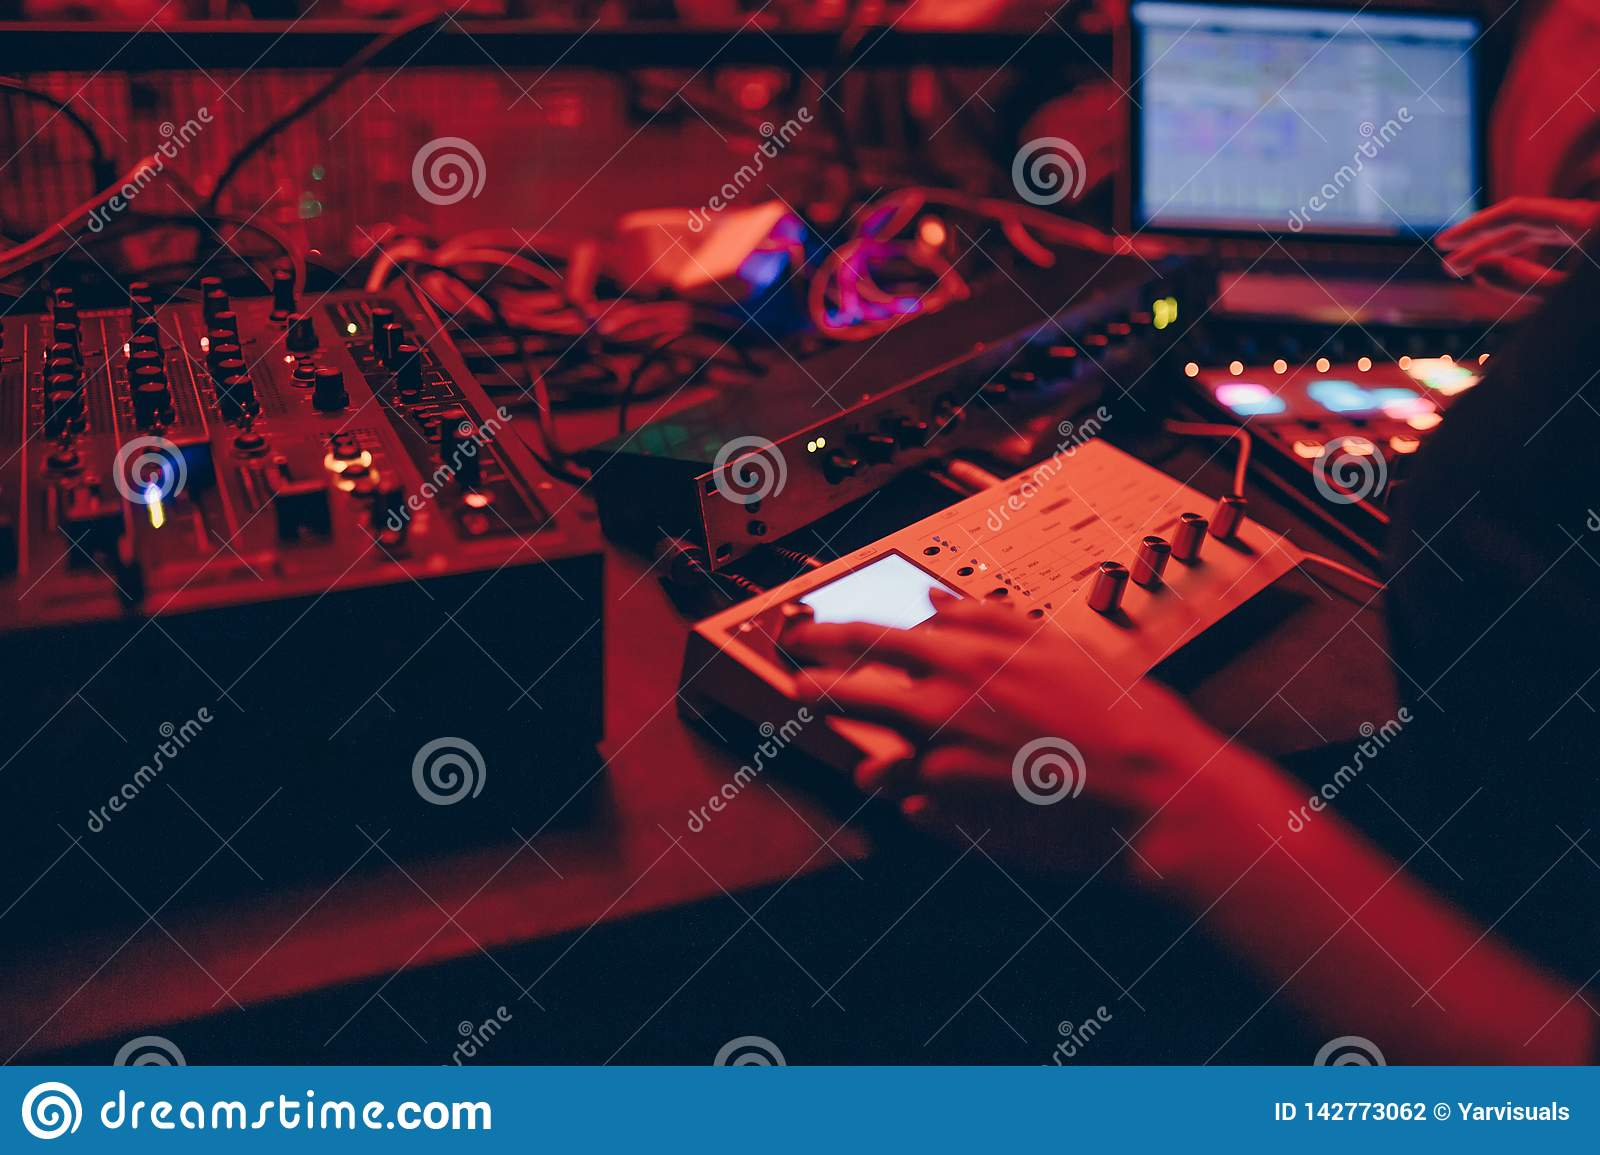 Producer DJ Mixer In A Nightclub With Glowing Plays Musical